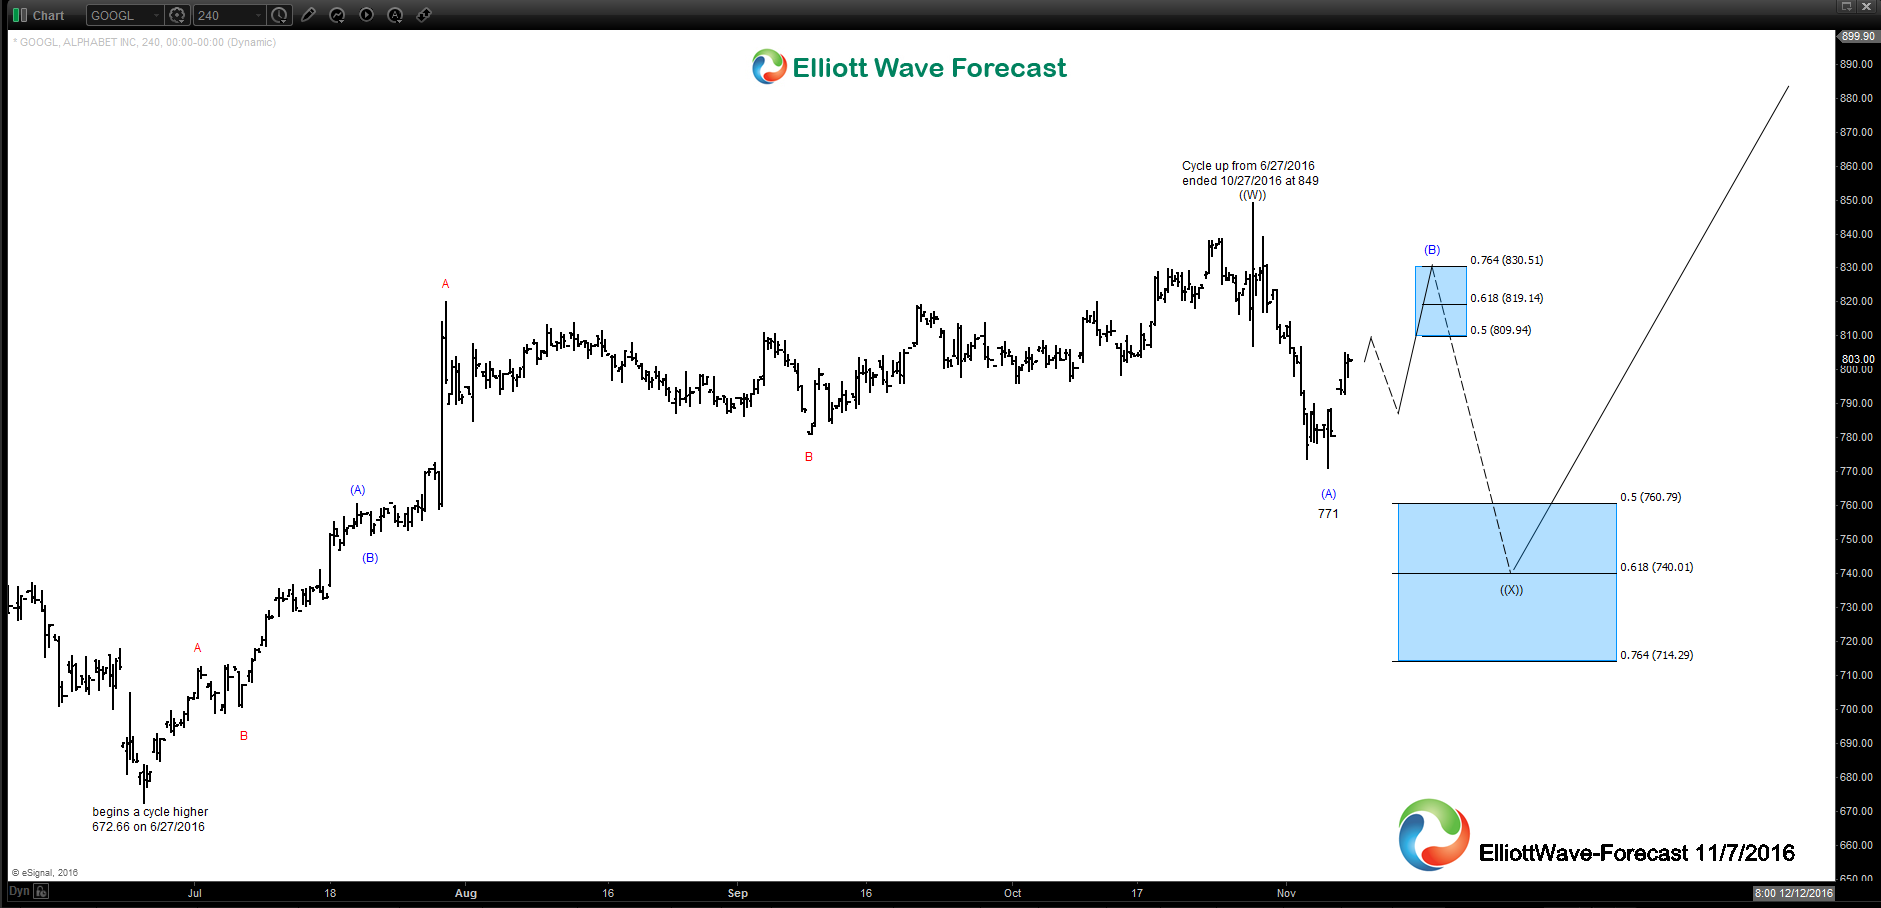 GOOGL Near Term 4 hour Elliott Wave Analysis